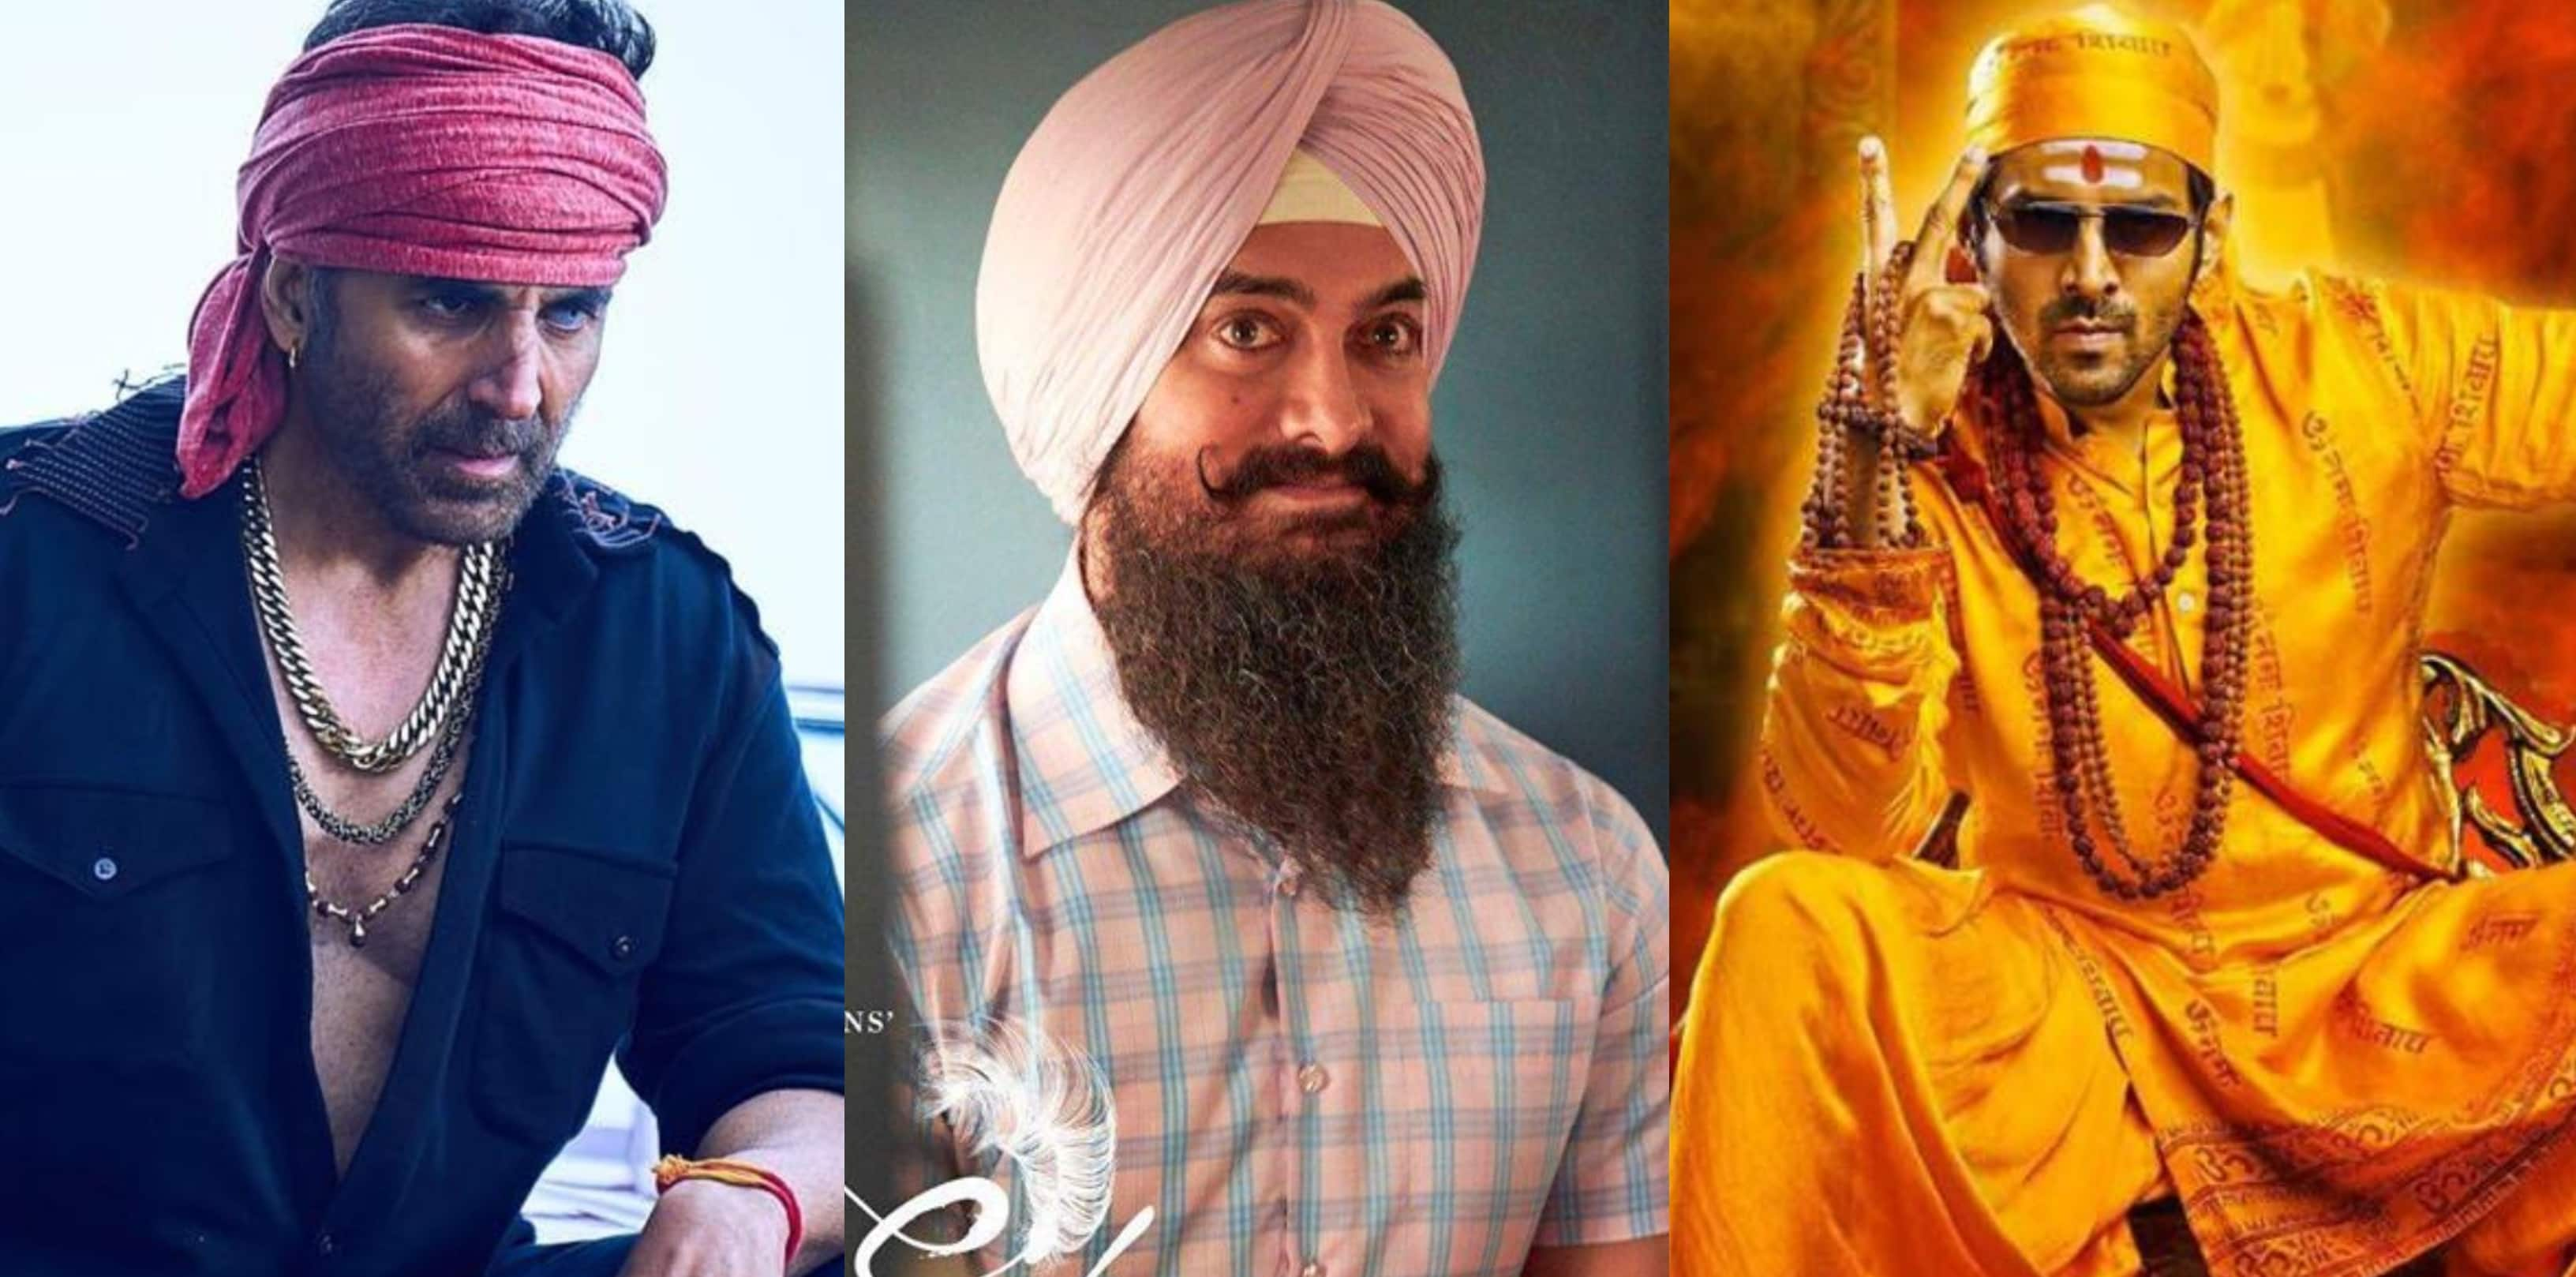 Adipurush, Raksha Bandhan, Chandigarh Kare Aashiqui and other big theatrical releases to look forward to in 2021-2022